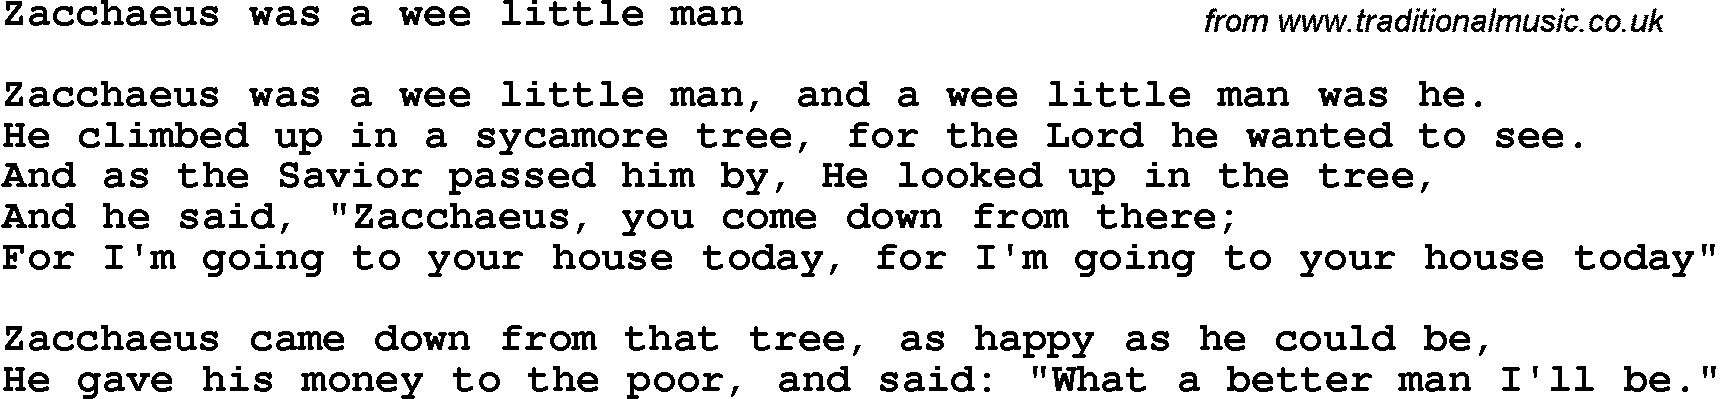 Lyric man song lyrics : Christian Childrens Song: Zacchaeus Was A Wee Little Man Lyrics